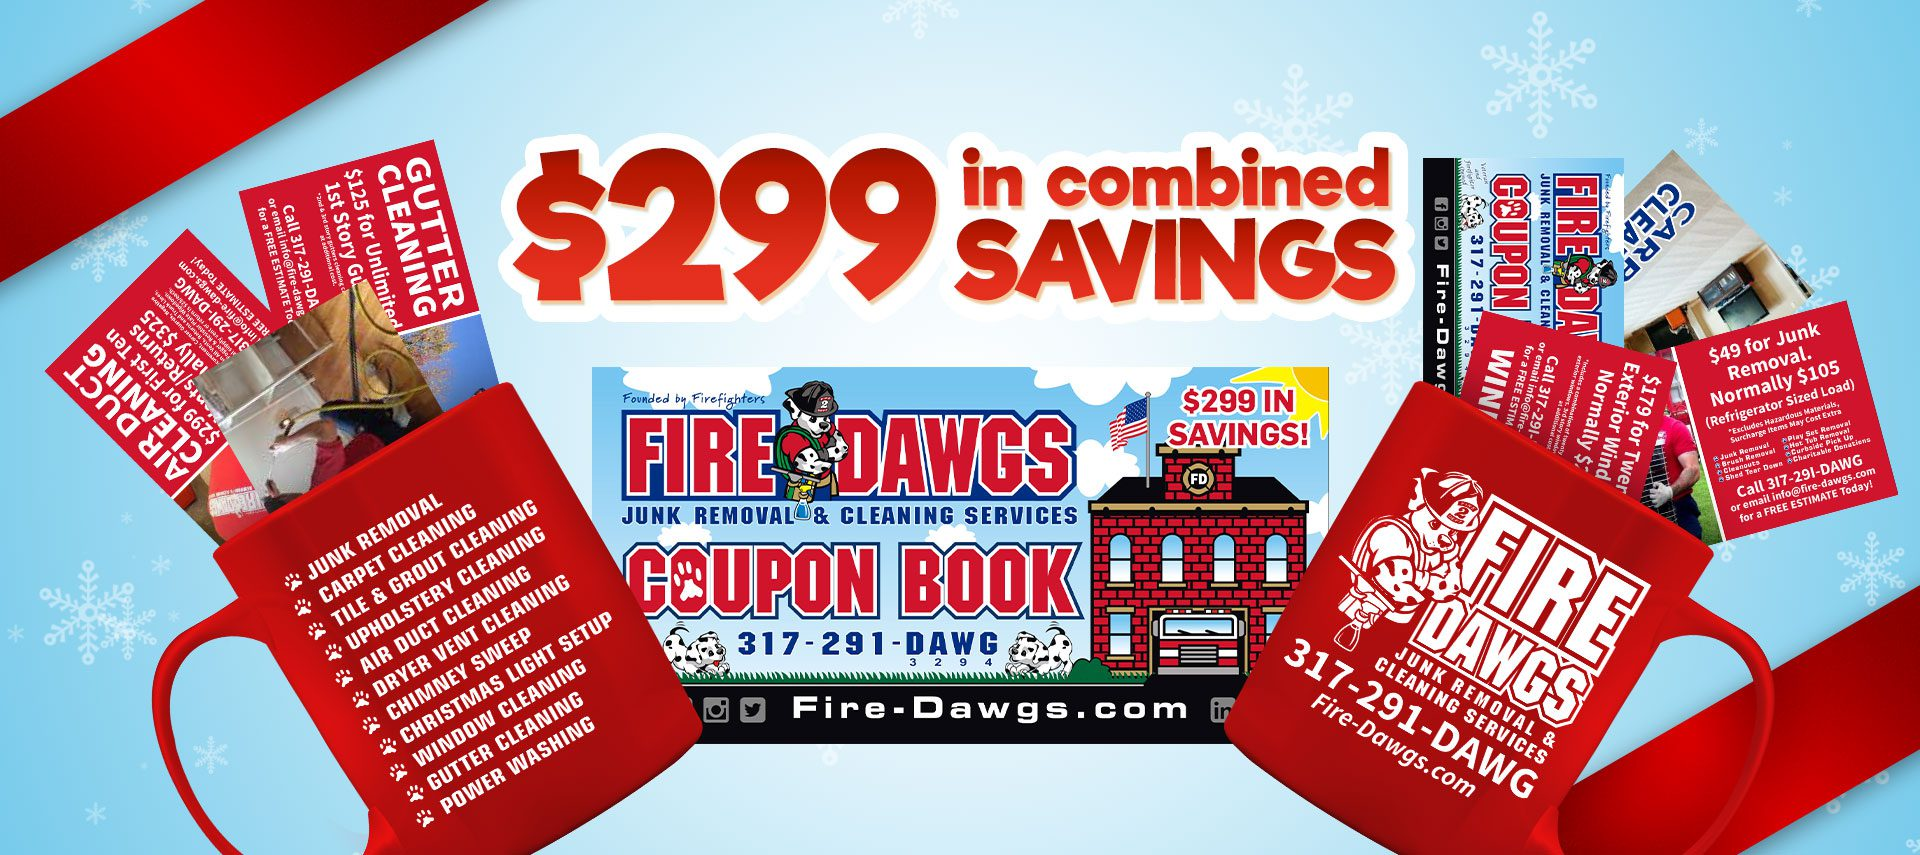 Fire Dawgs Coupon Book 2017